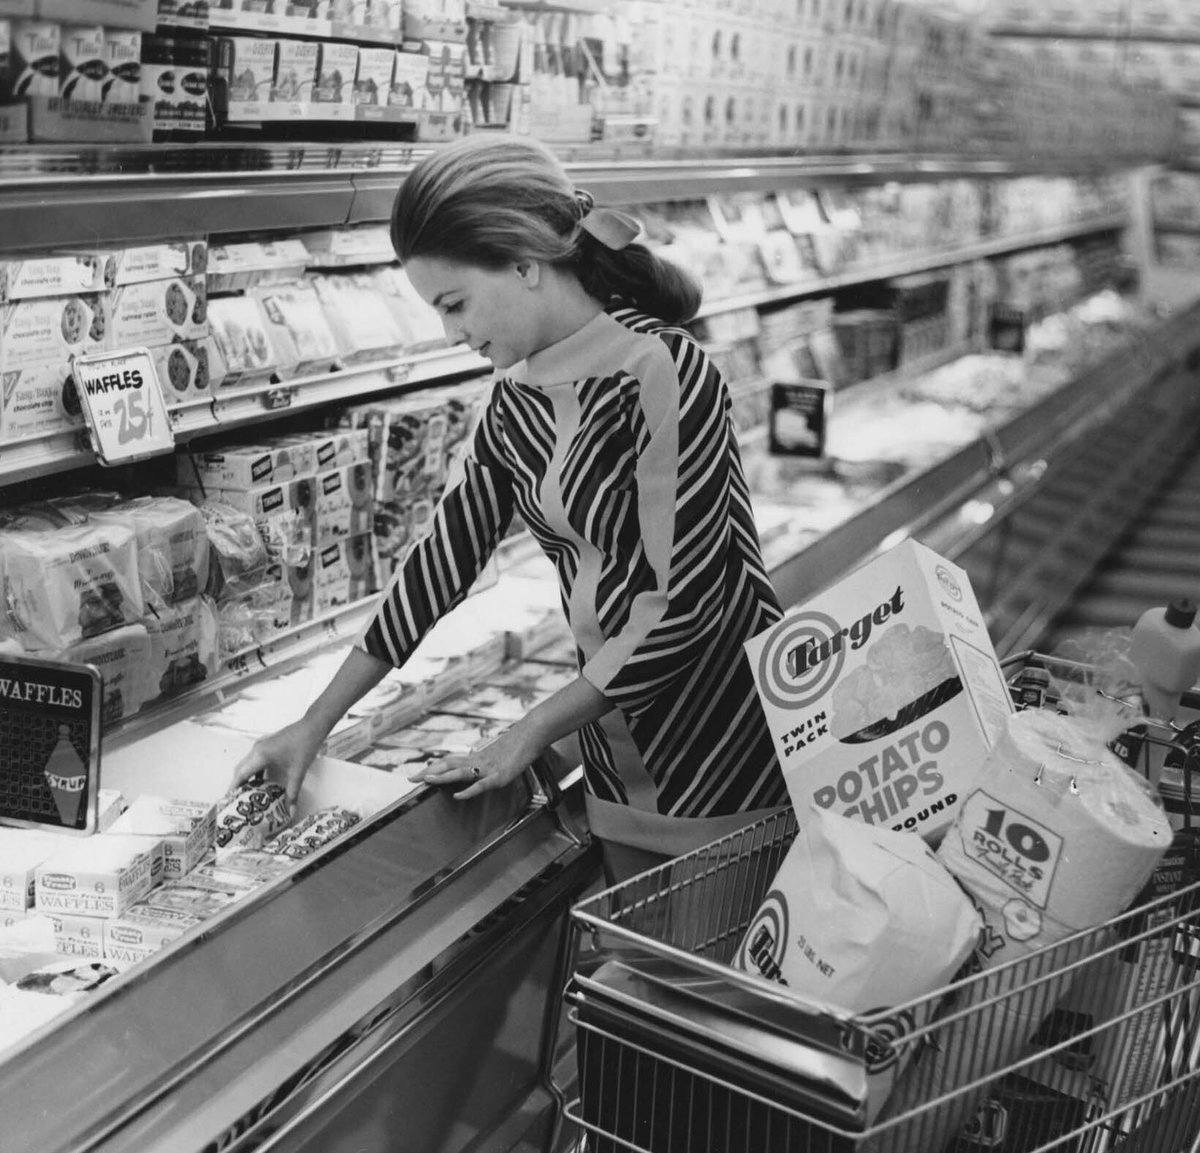 Wandering from your list since 1960. 😉 #FlashbackFriday https://t.co/C...